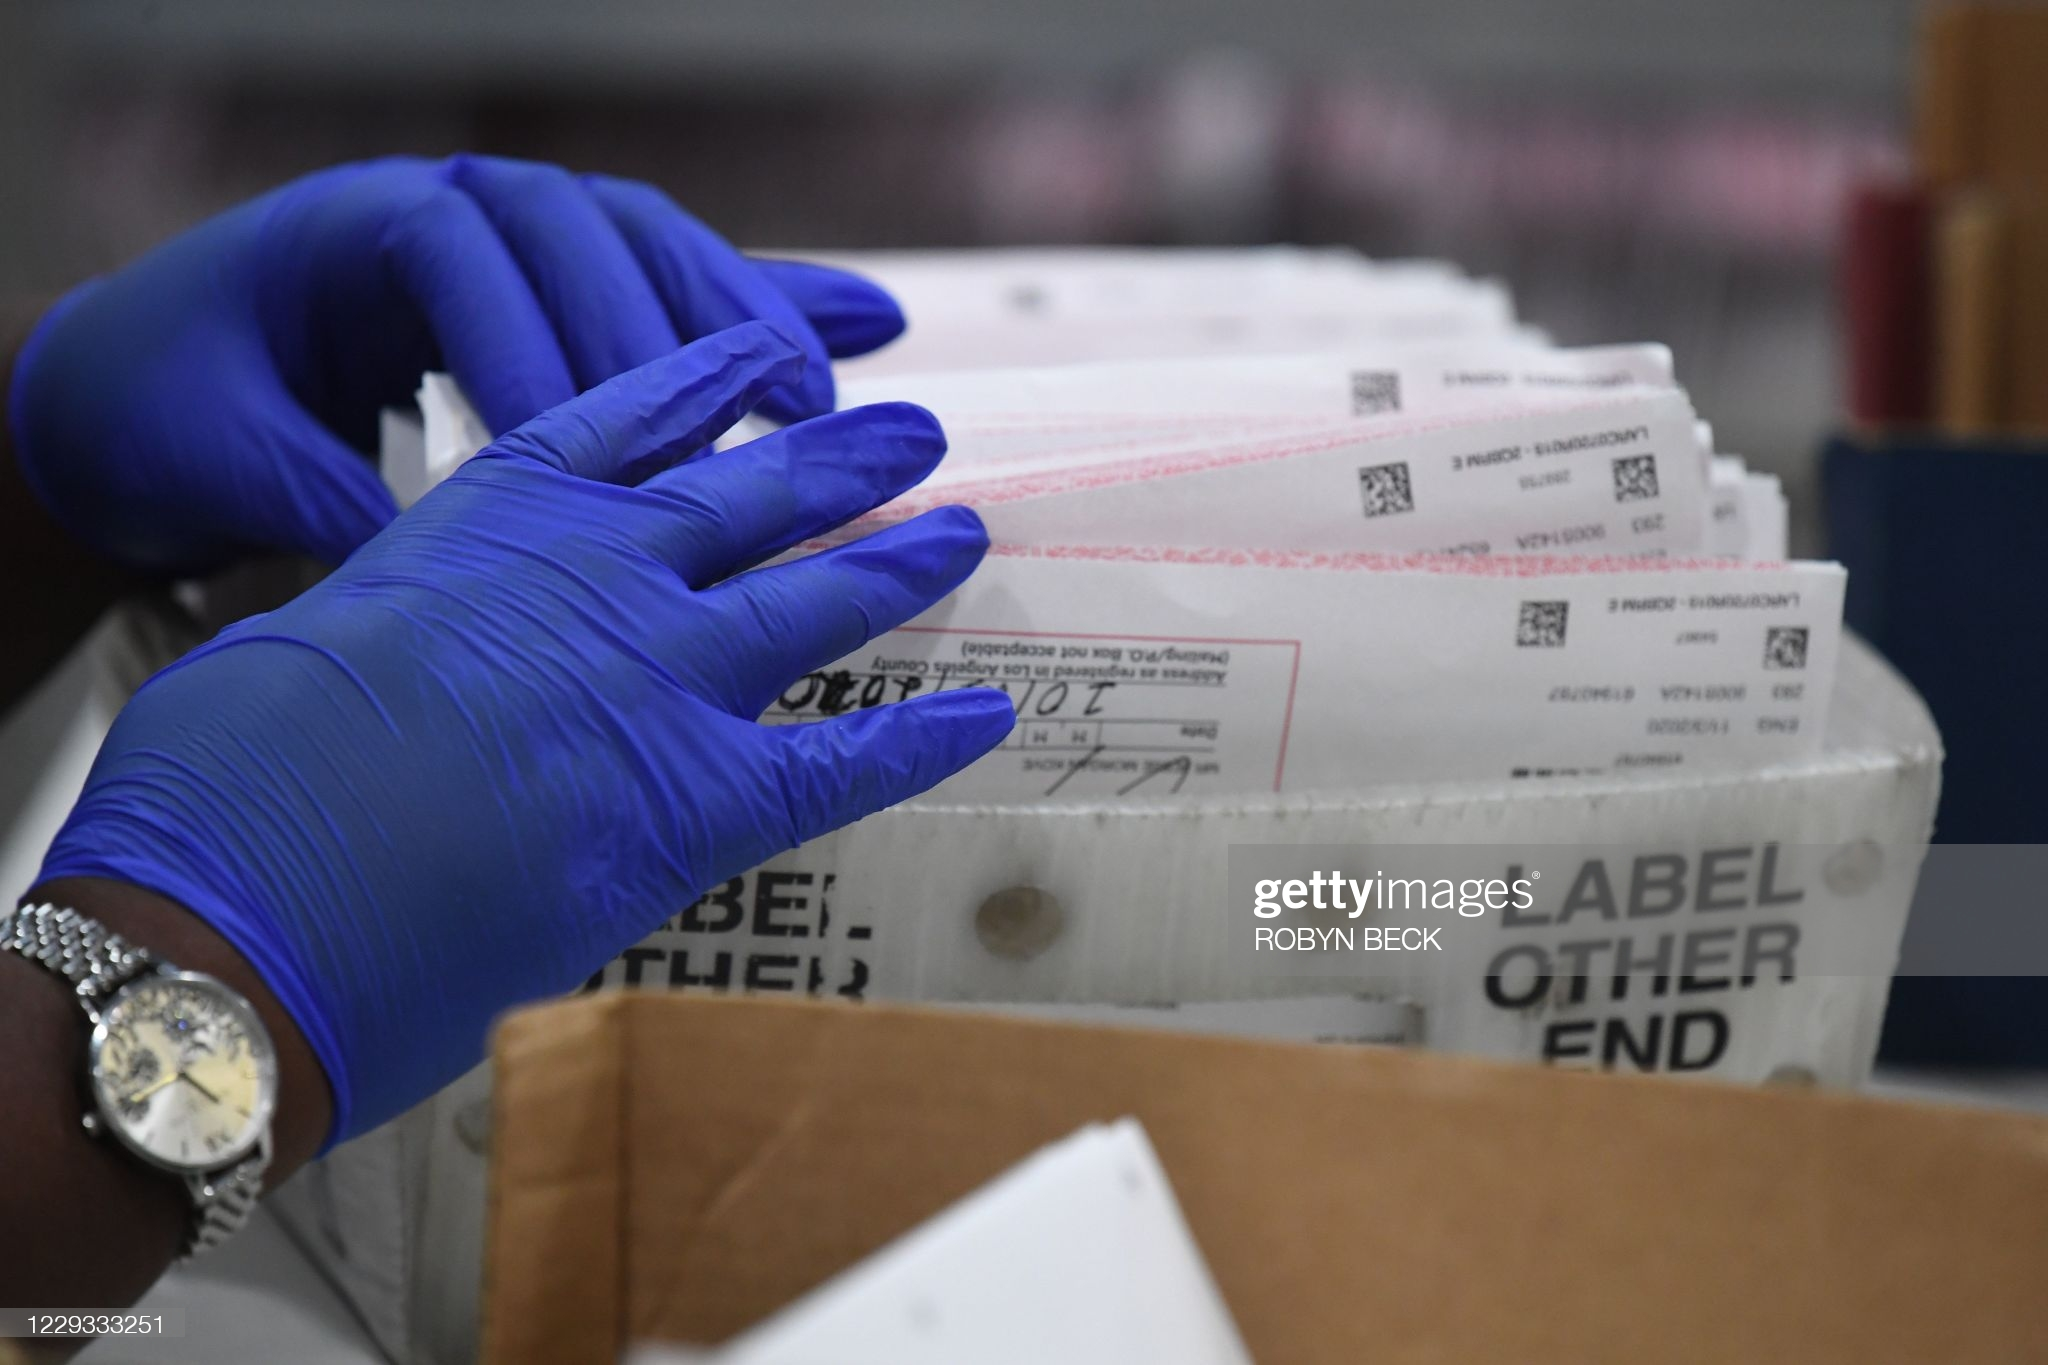 Election workers extract mail-in ballots from their envelopes and examine the ballot for irregularities at the Los Angeles County Registrar Recorders' mail-in ballot processing center at the Pomona Fairplex in Pomona, California, October 28, 2020. - Officials relocated mail-in ballot processing to the expansive location due to the need for COVID-19 social distancing for the ballot workers and the large number of mail-in ballots. While the tabulation of votes cast for Donald Trump and Joe Biden will begin when polls close on November 3 at 8pm, envelopes are now being sorted and signatures and ballots verified to expedite the tabulation process on November 3. (Photo by Robyn Beck / AFP) (Photo by ROBYN BECK/AFP via Getty Images)